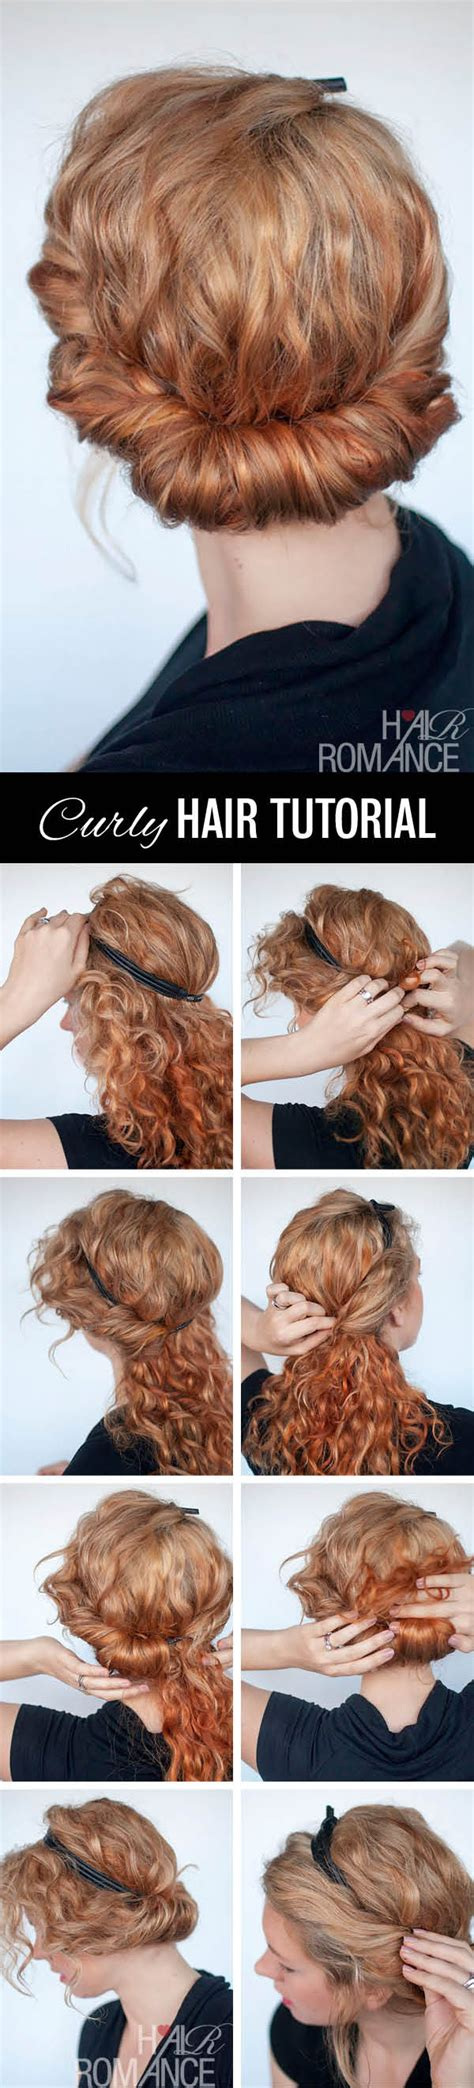 curly hair updos step by step curly hairstyle tutorial rolled headband updo hair romance